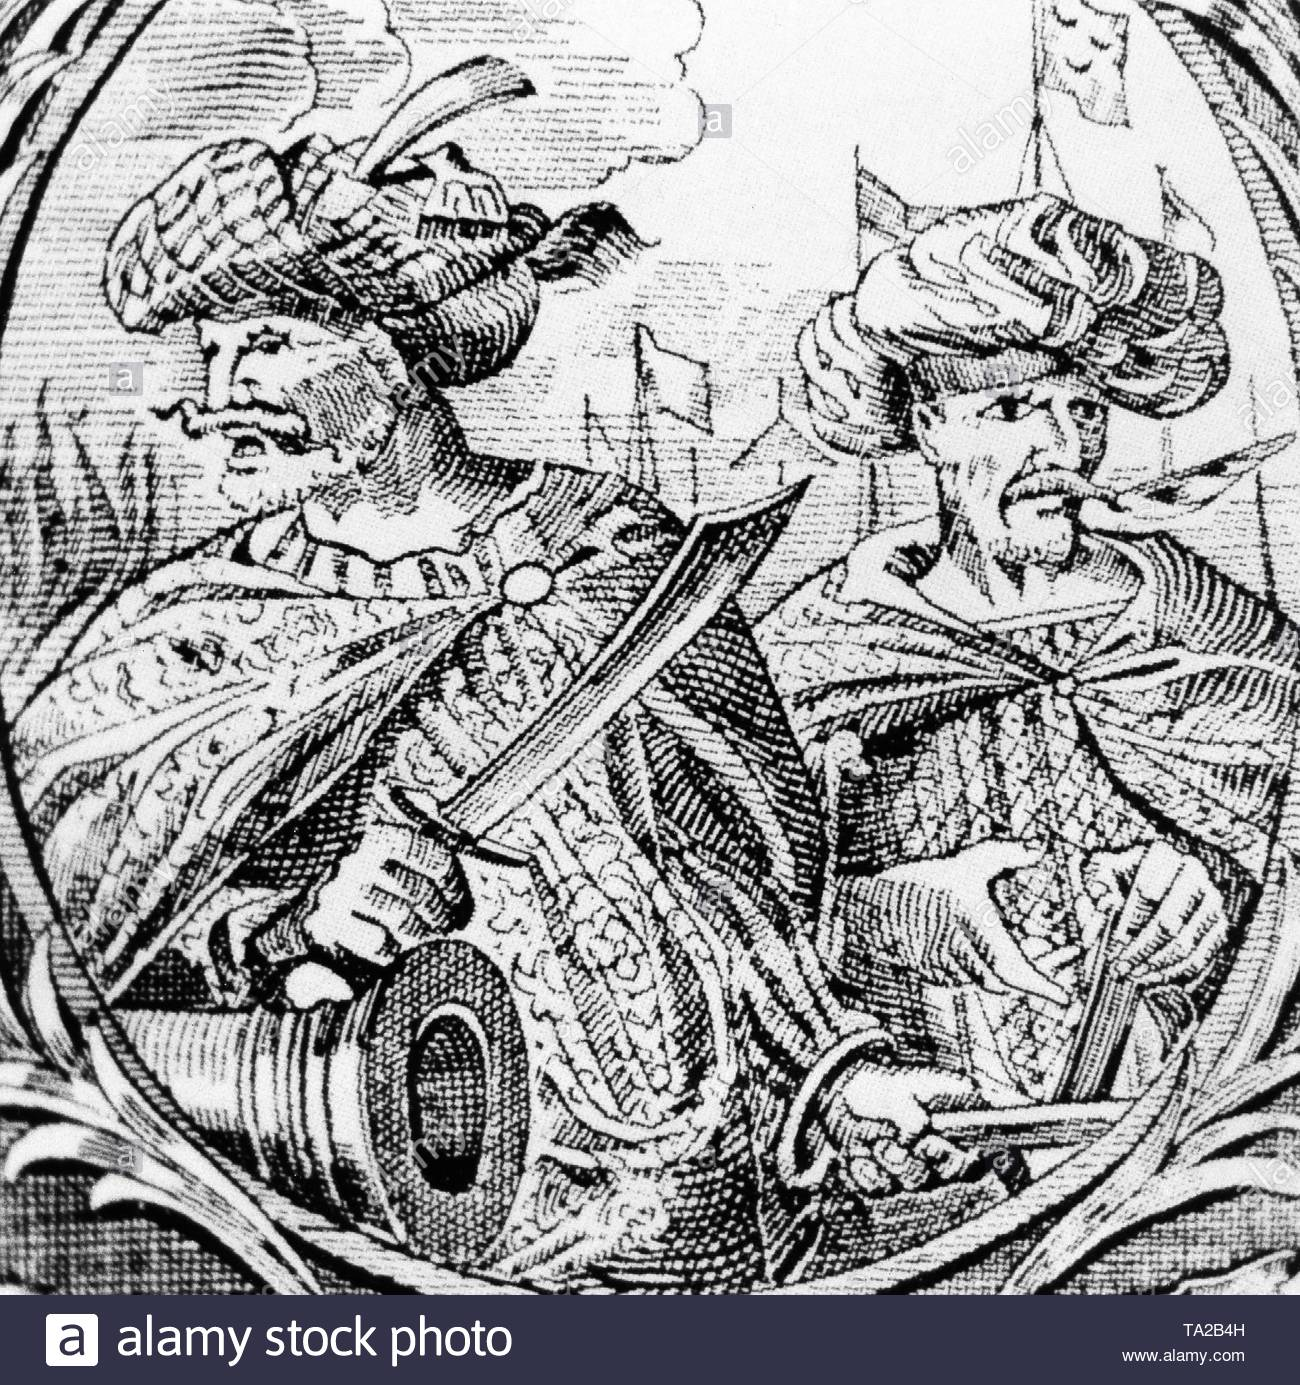 The pirates Horuk (Arudsch or Uruj, 1473-1518) and Chair al Din (also Cheireddin or Cheyreddin, 1467-1546). The two were also called the brothers Barbarossa. After an illustration from the 16th century. - Stock Image